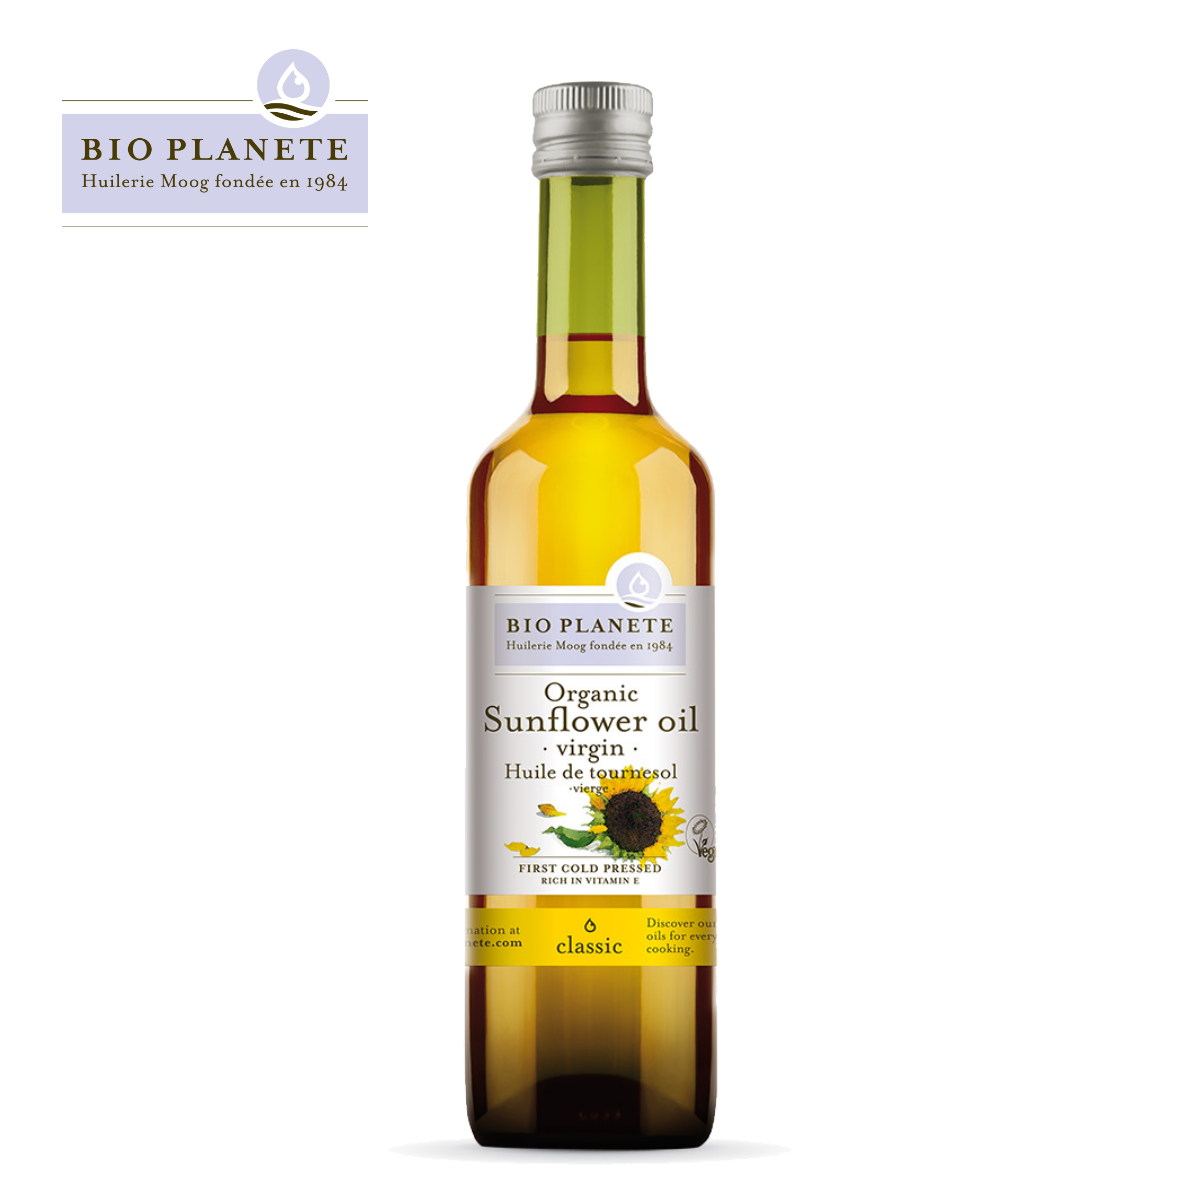 BIO PLANETE Virgin Sunflower Oil (500ml) - Rich in Vitamin E